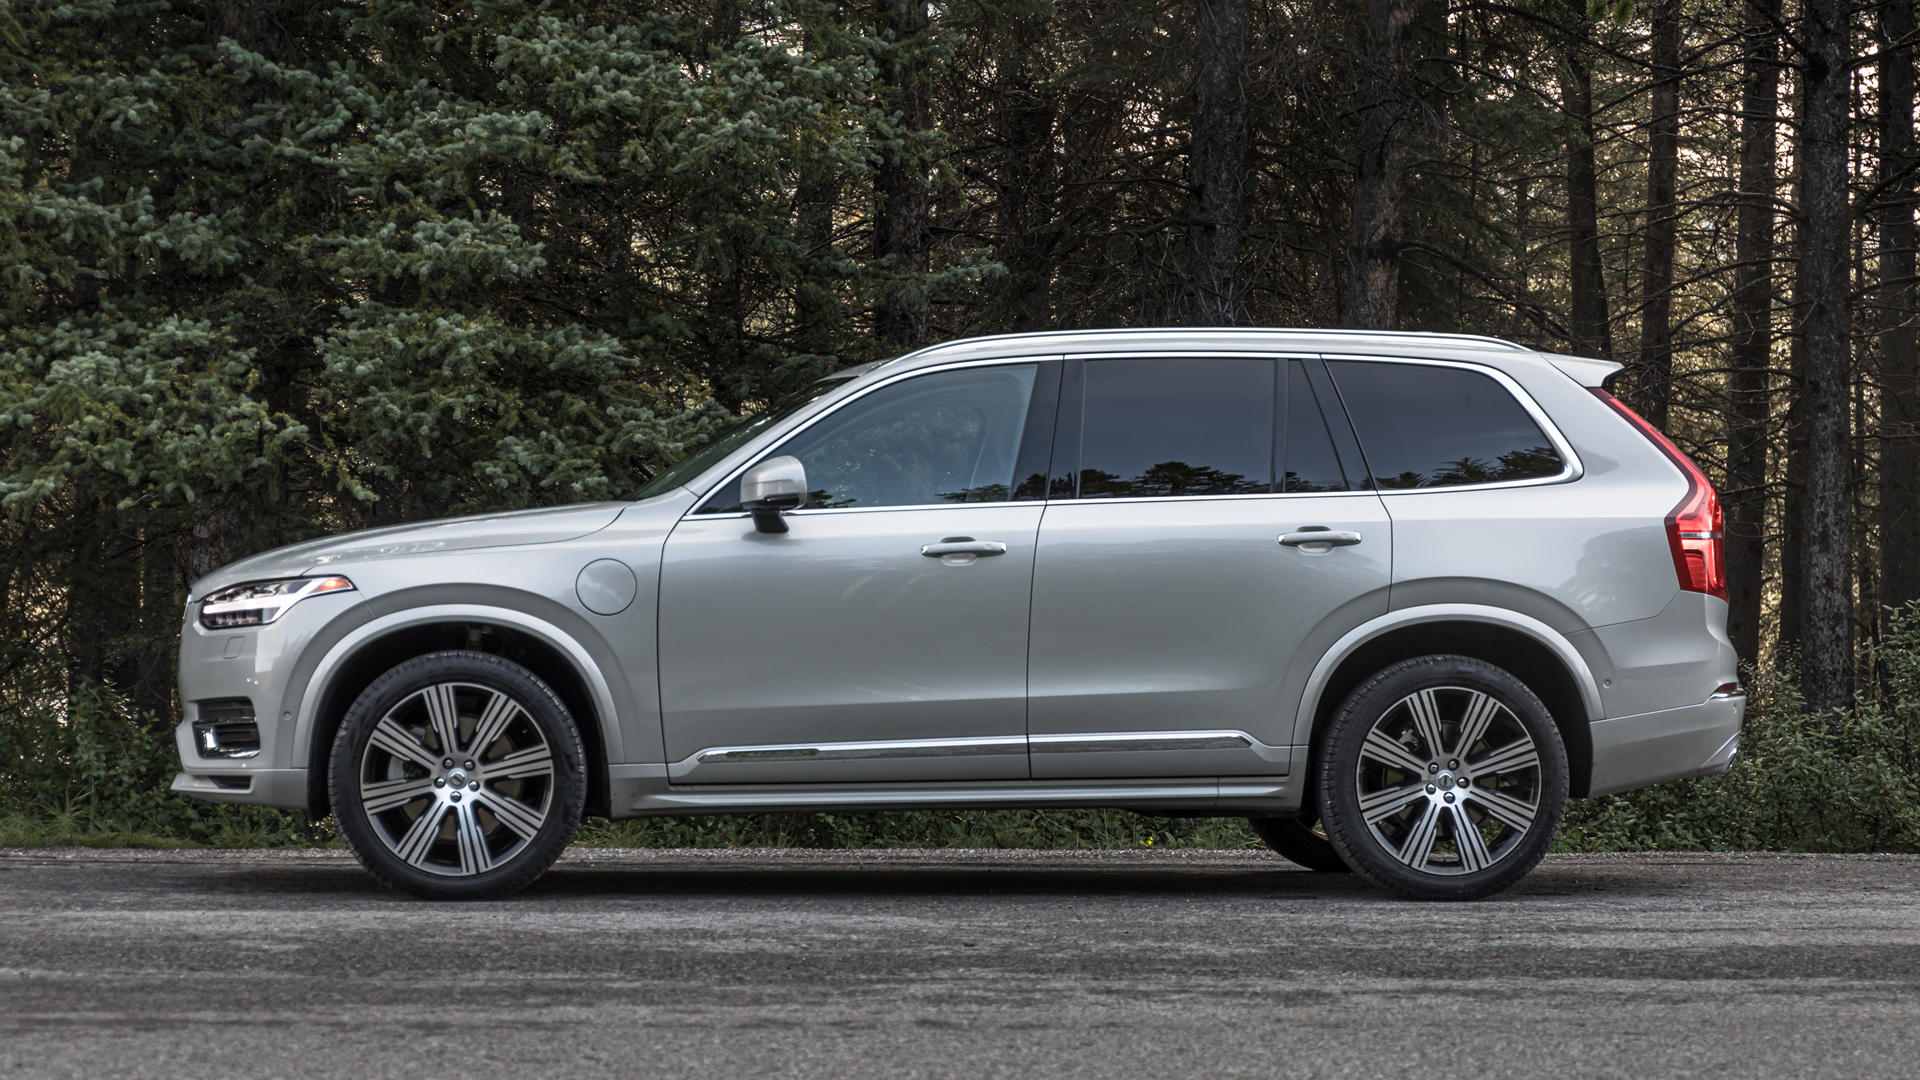 Video: Five things you need to know about the 2020 Volvo XC90